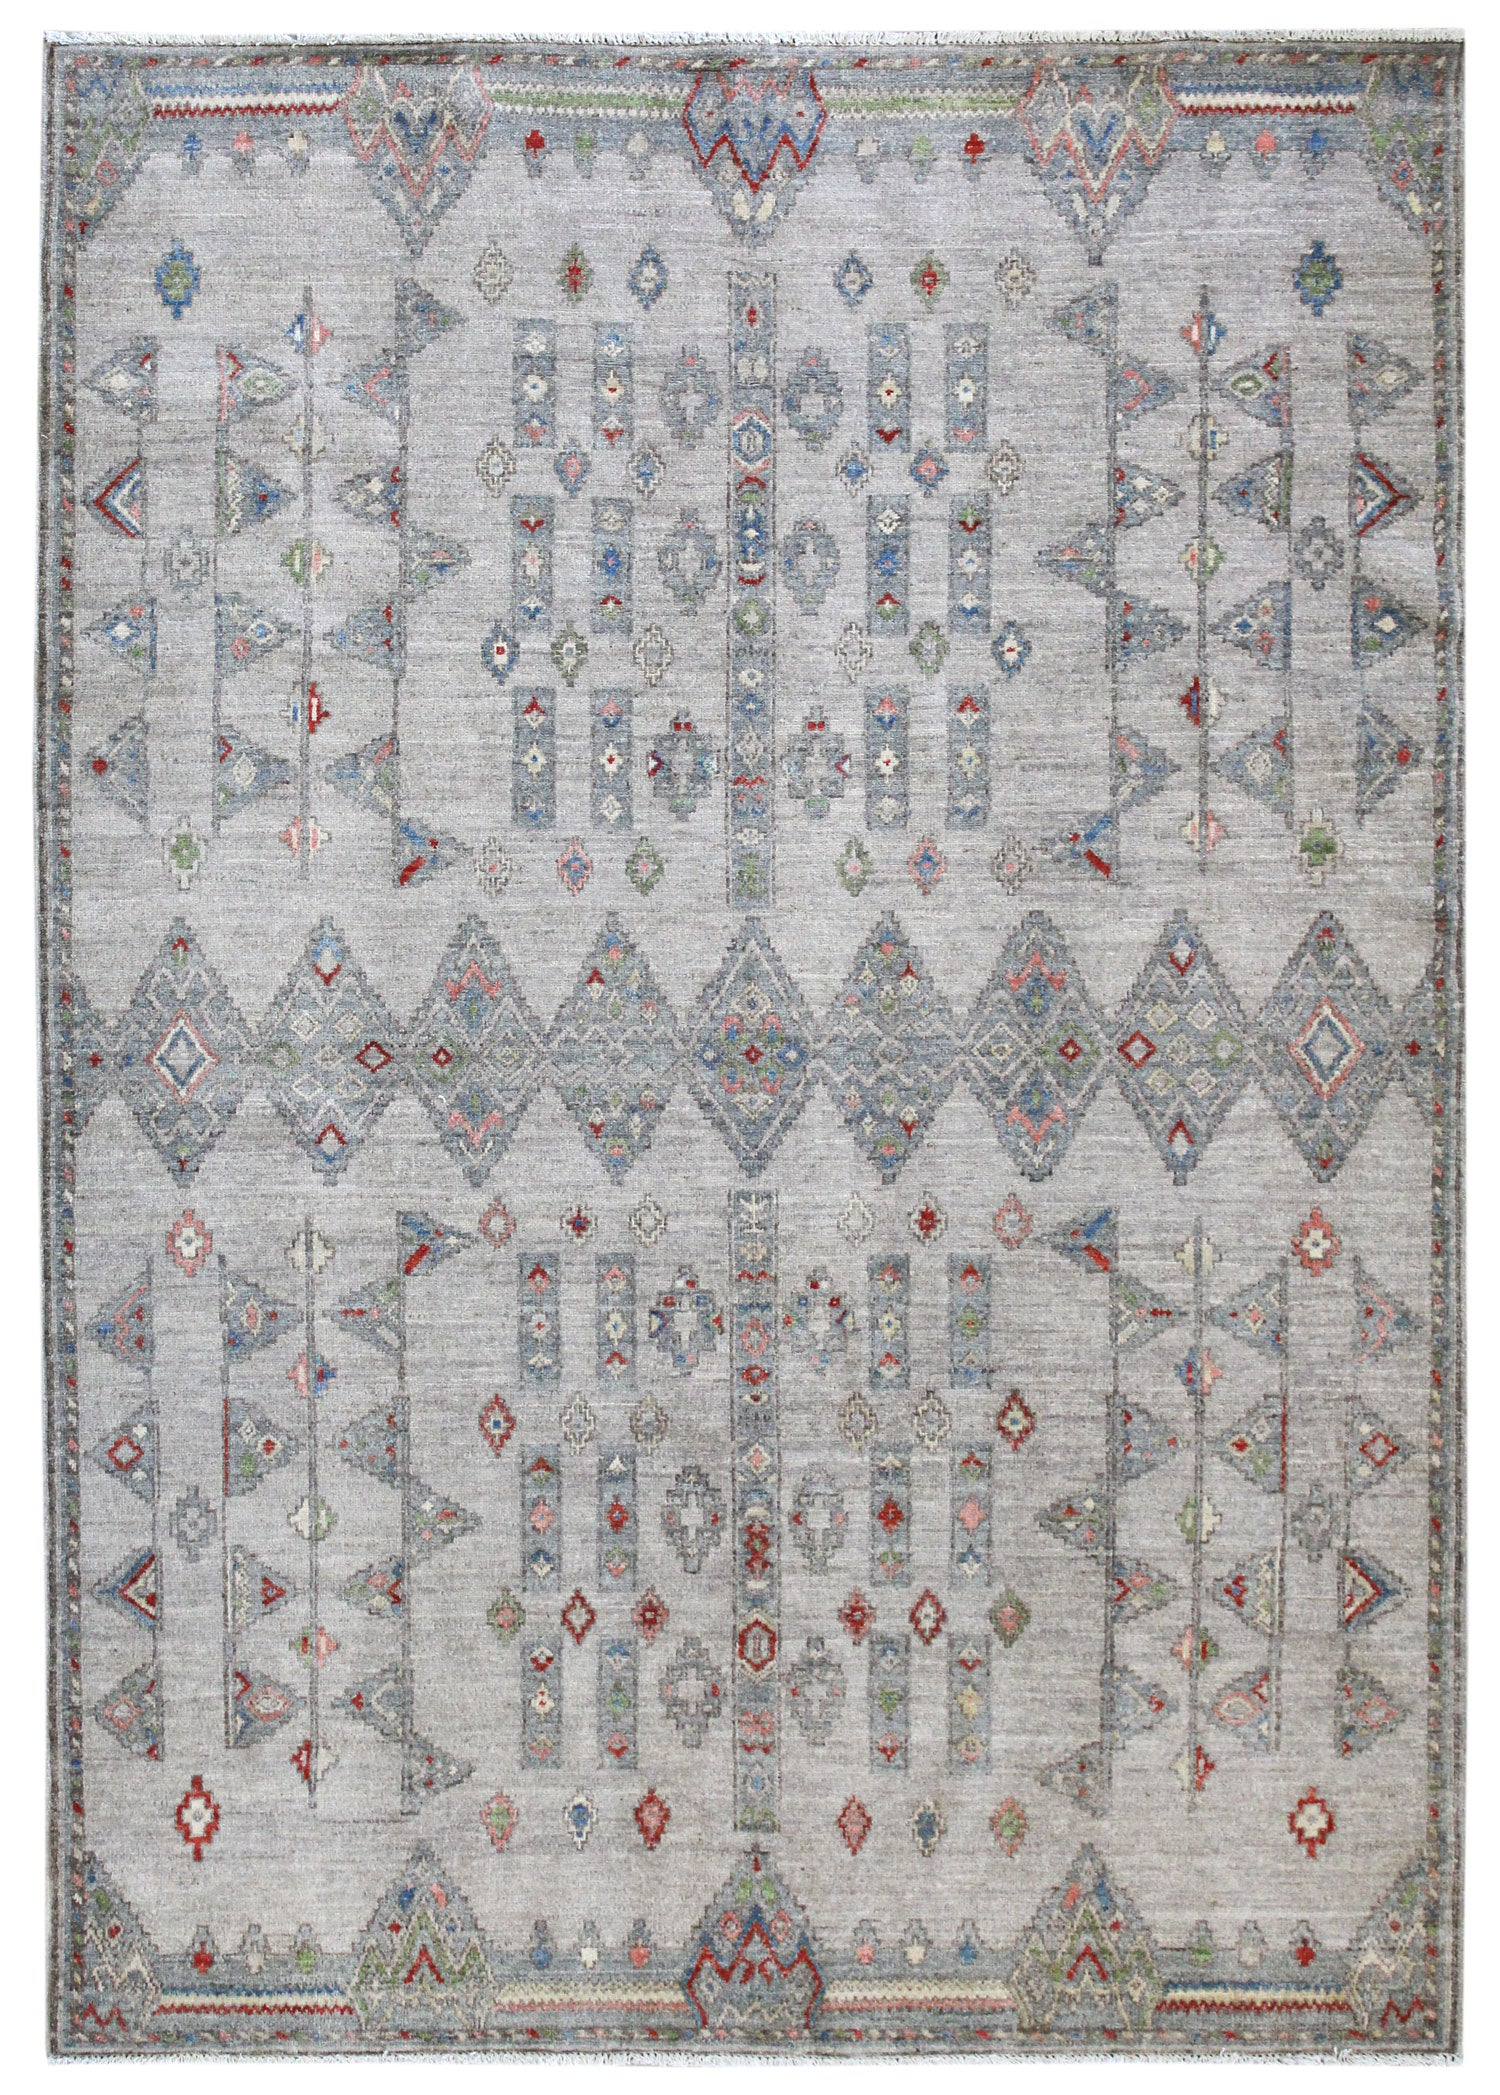 Tuareg Handwoven Tribal Rug